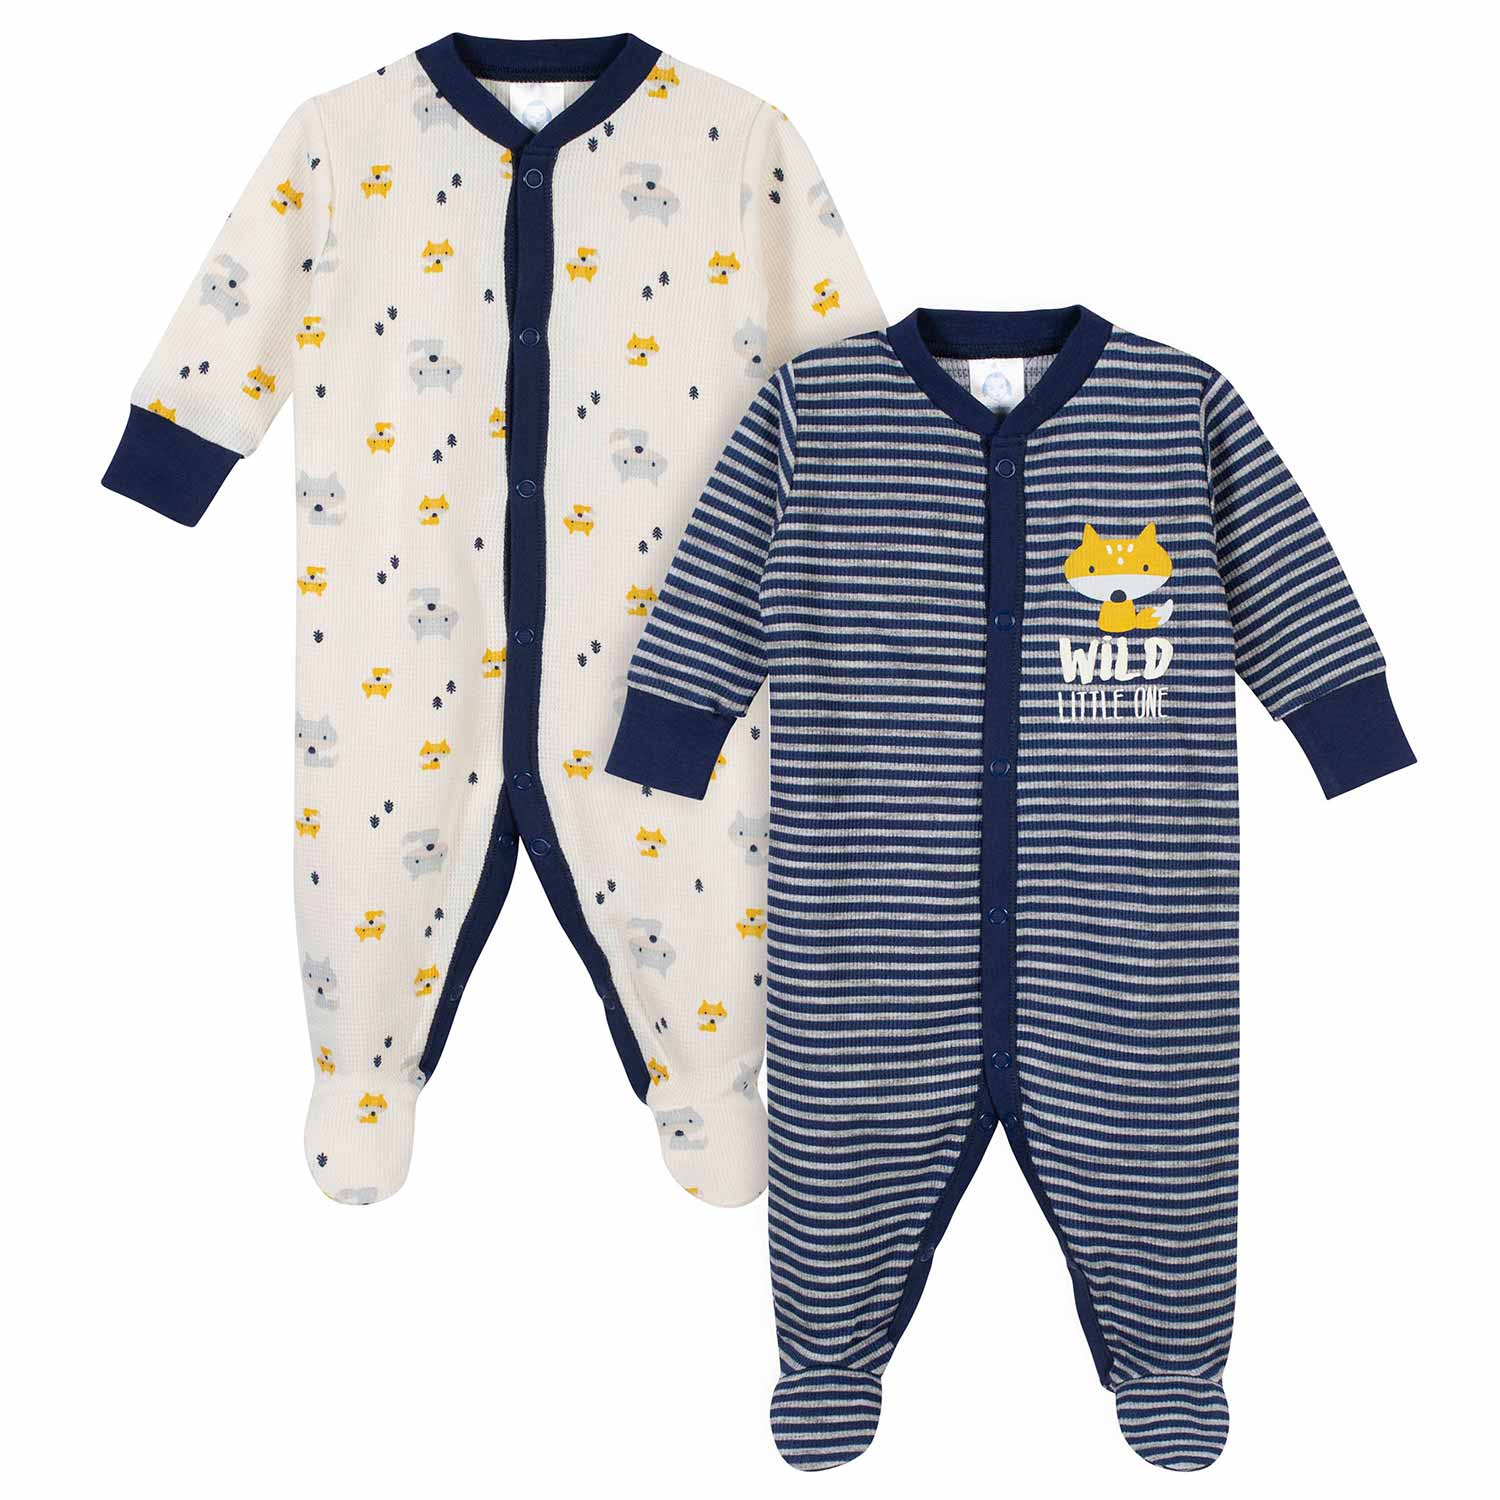 2-Pack Baby Boys Woodland Thermal Sleep N' Plays